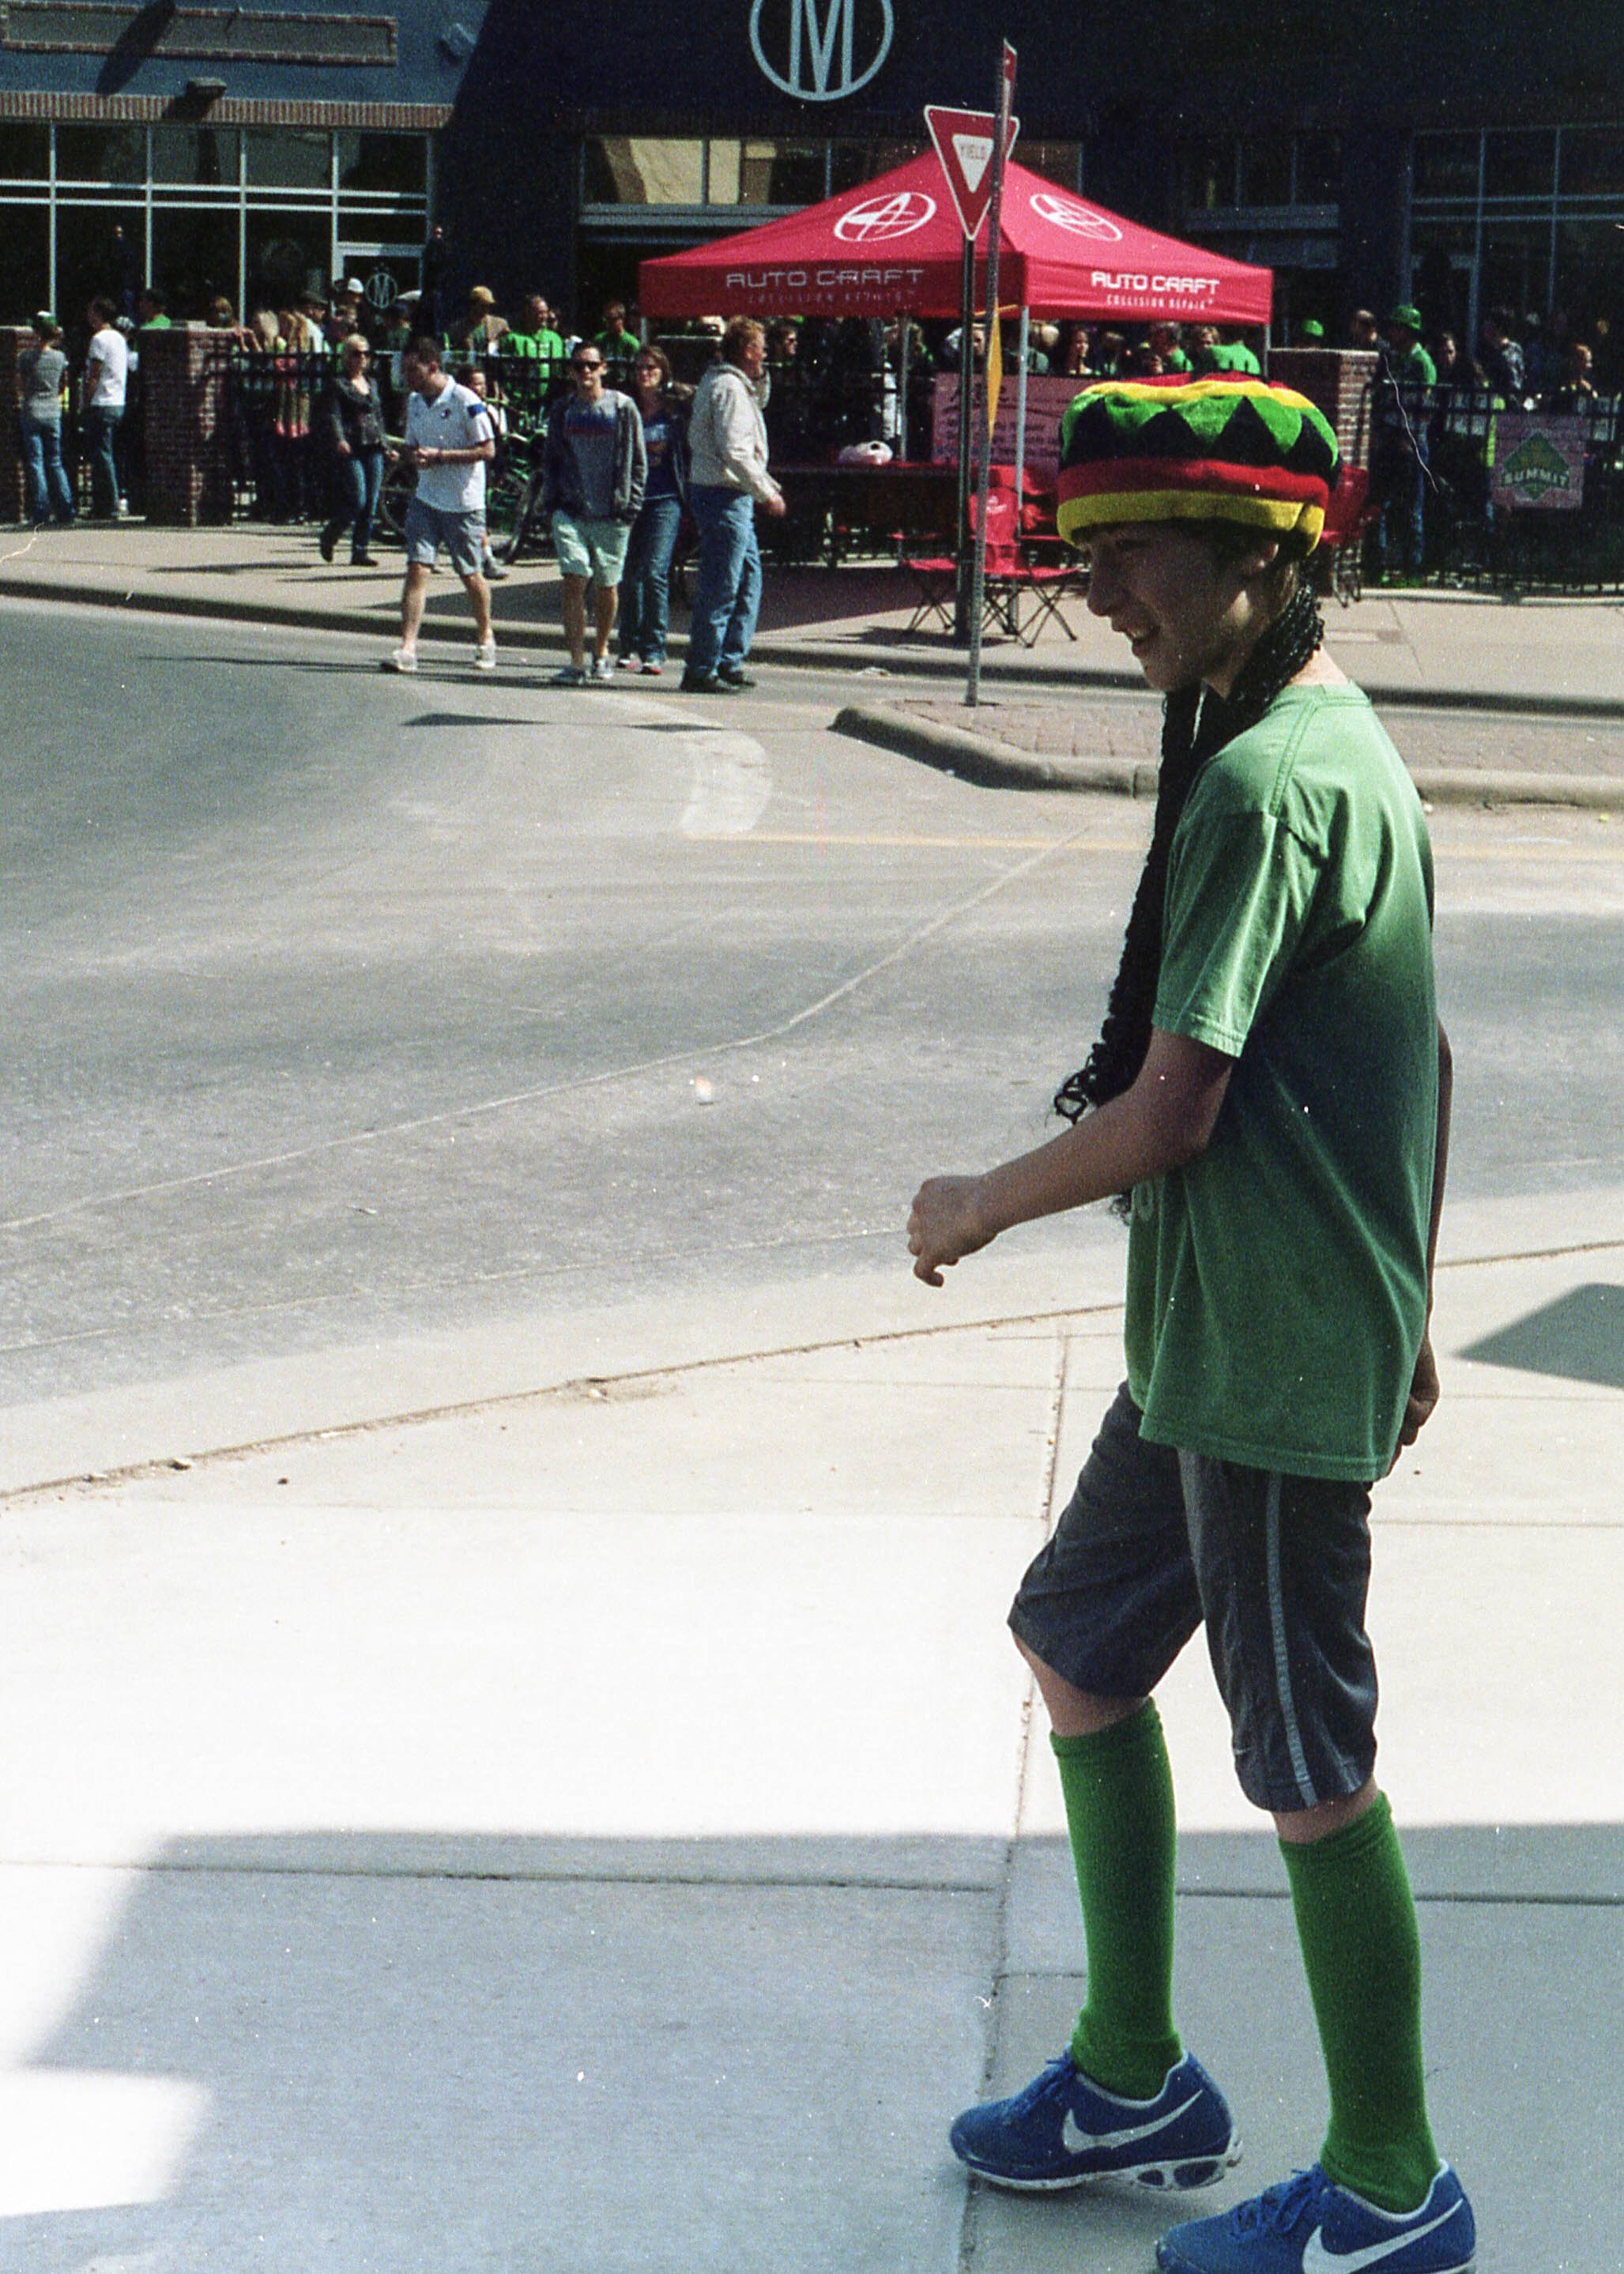 The Rasta-Irish were represented well at the st. Patty's Day parade.